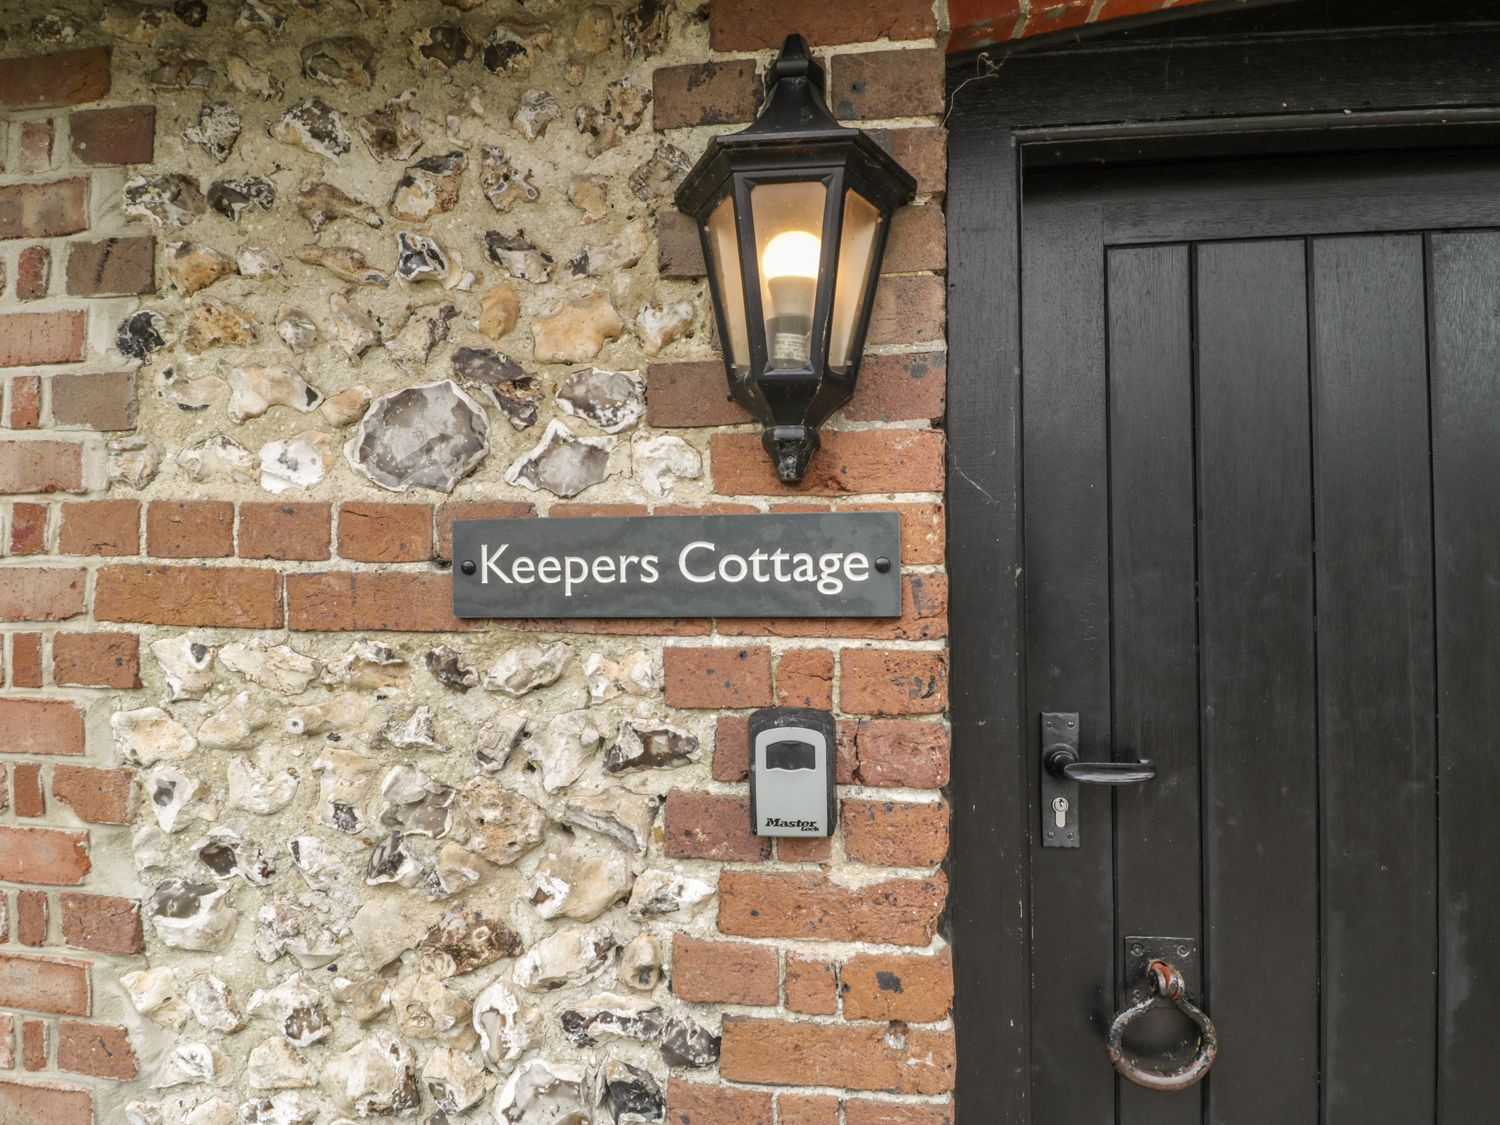 Keepers Cottage, Dorset